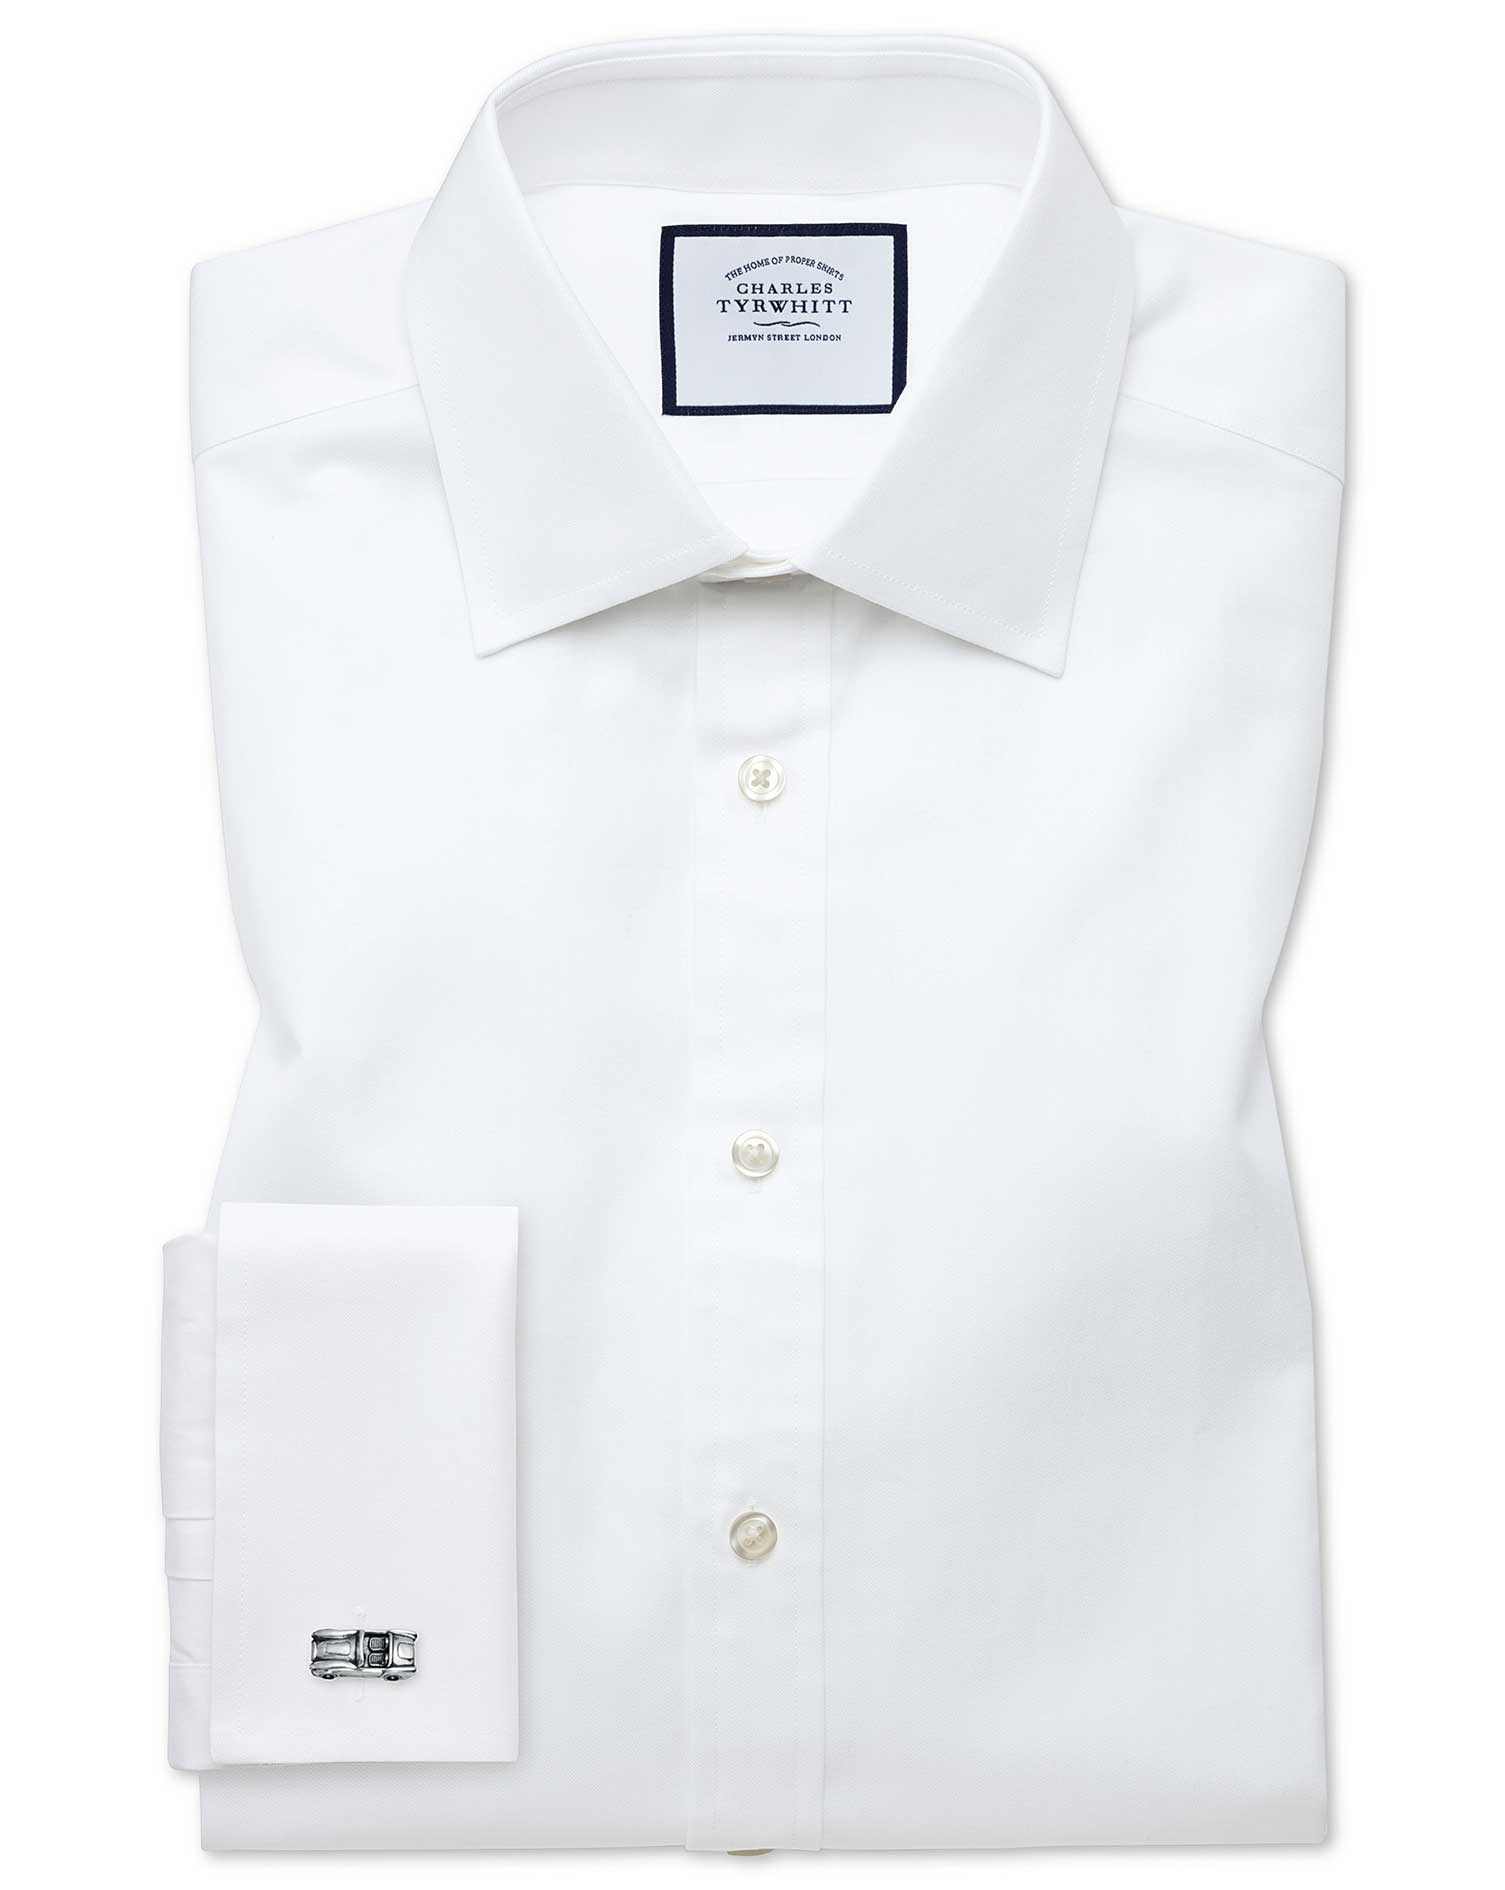 Slim Fit Fine Herringbone White Cotton Formal Shirt Double Cuff Size 17/37 by Charles Tyrwhitt